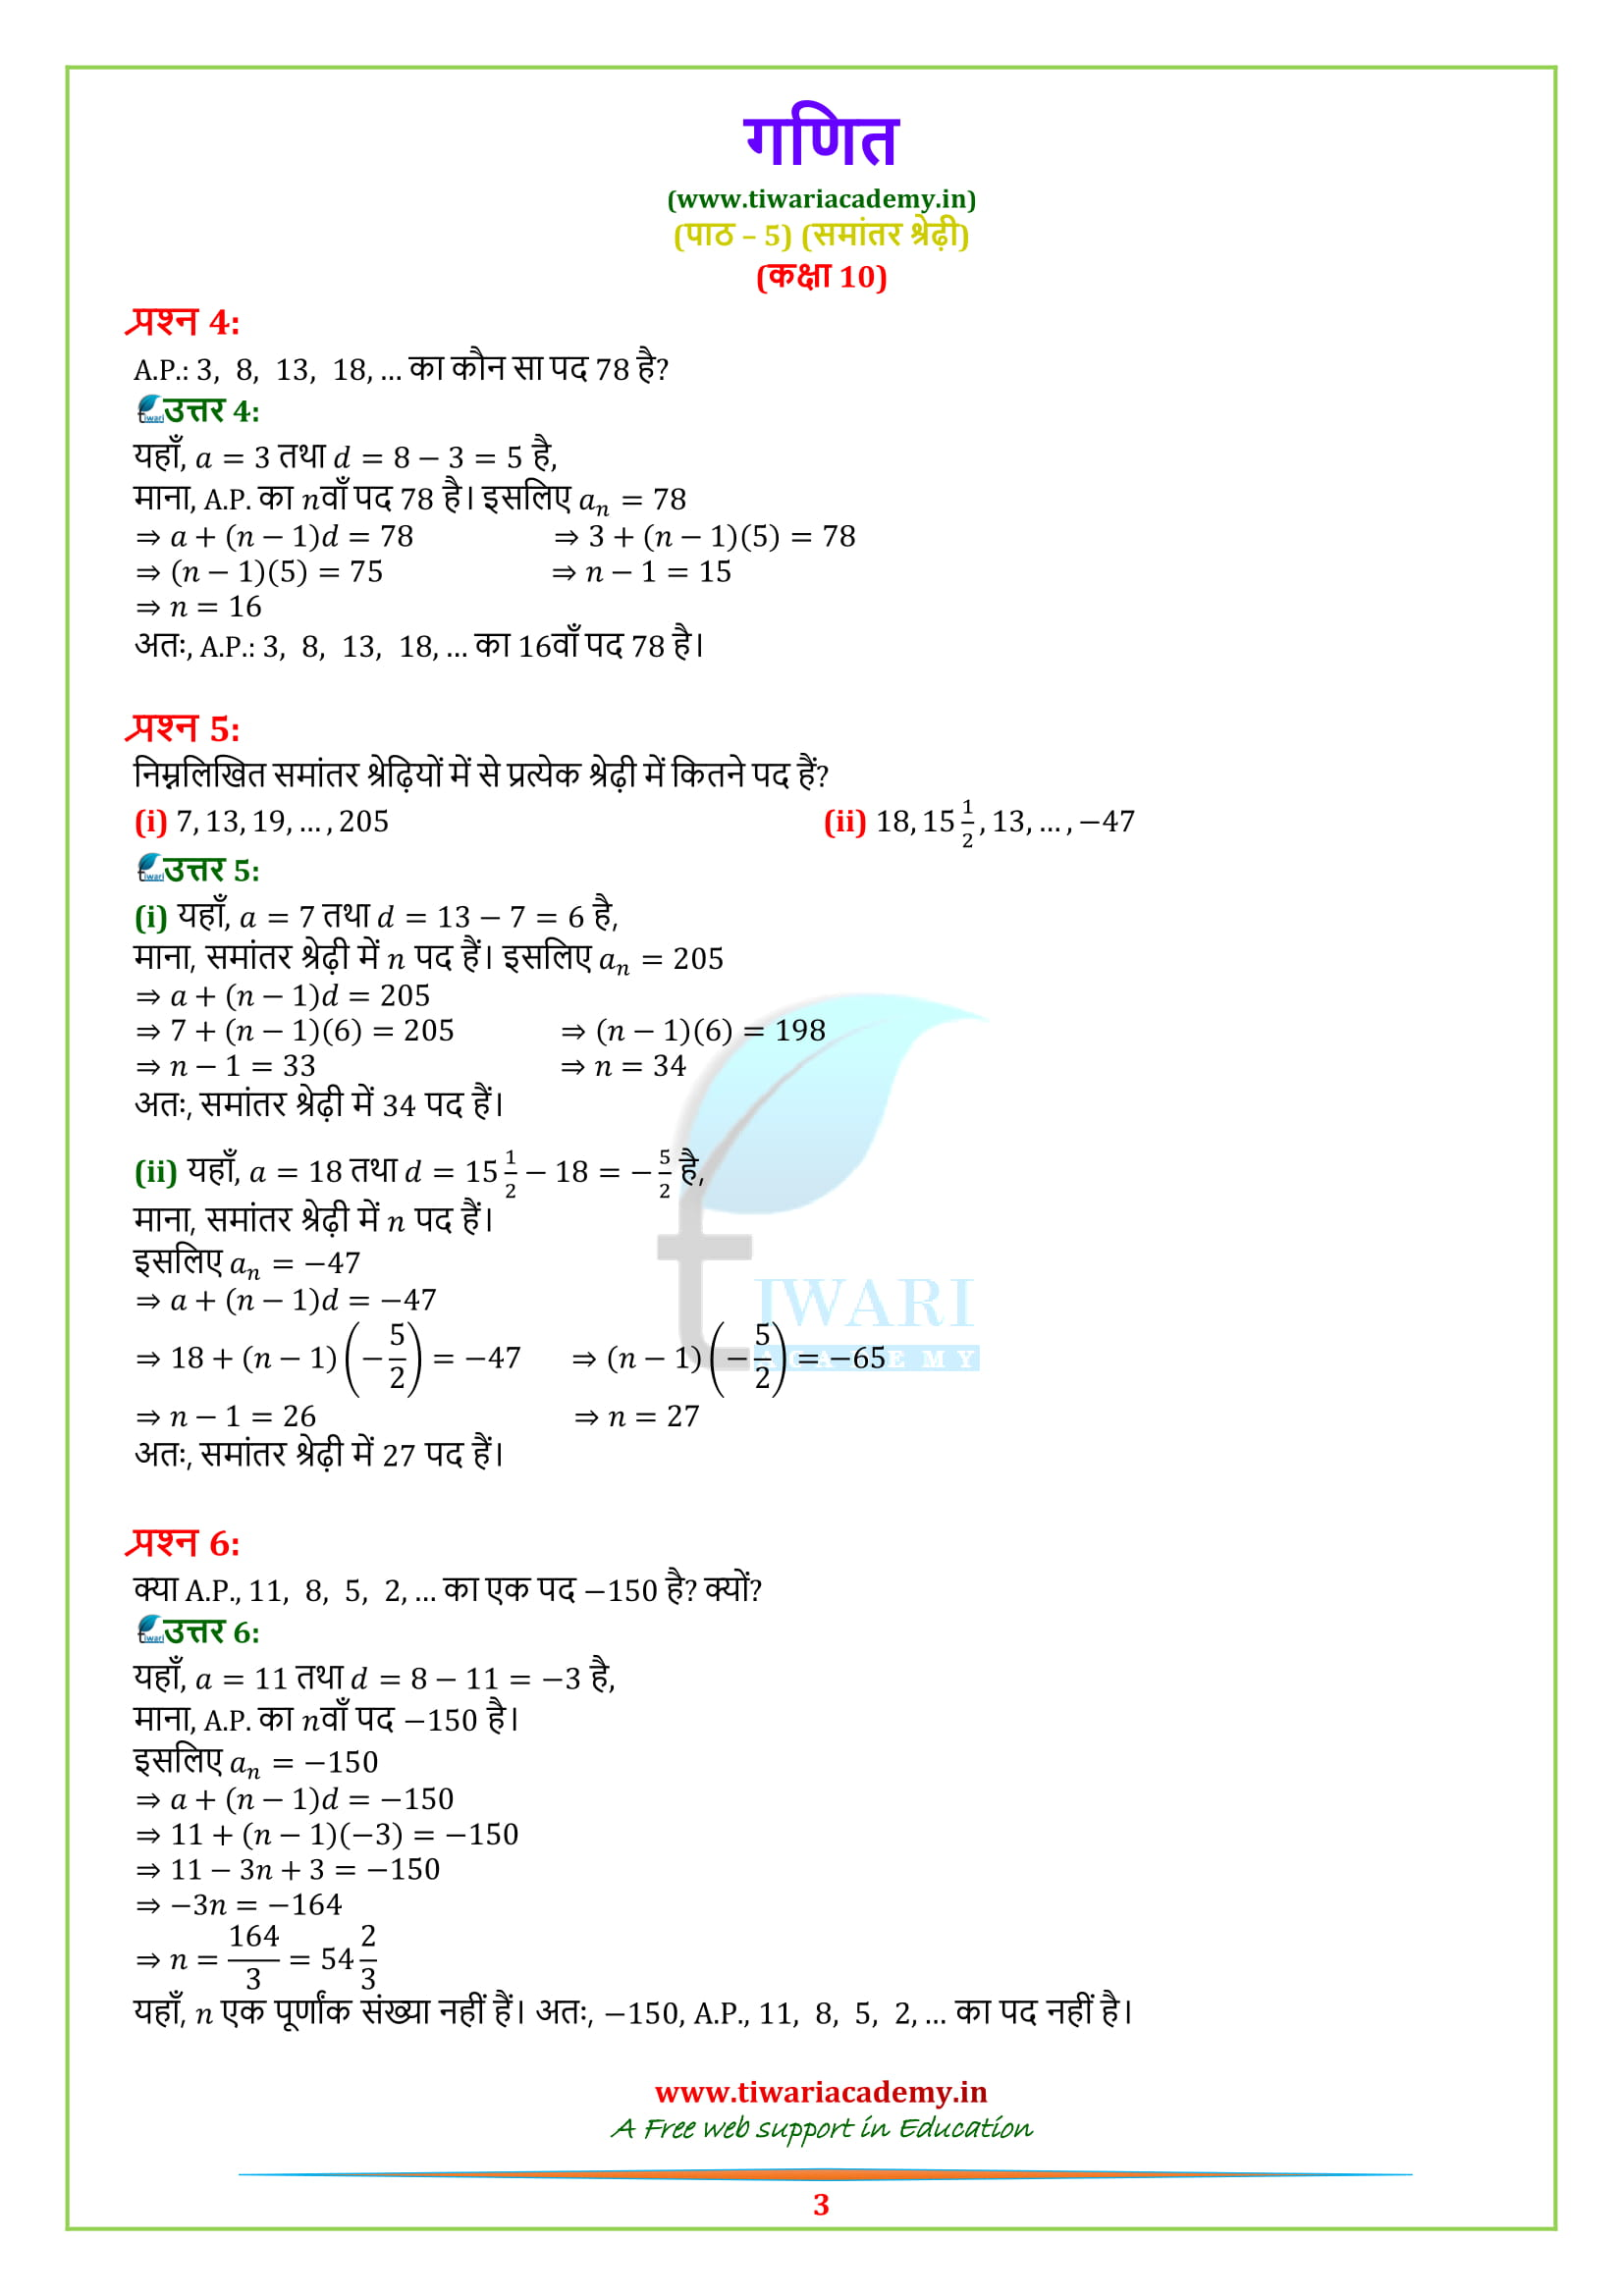 NCERT Solutions for Class 10 Maths exercise 5.2 updated for up board in hindi